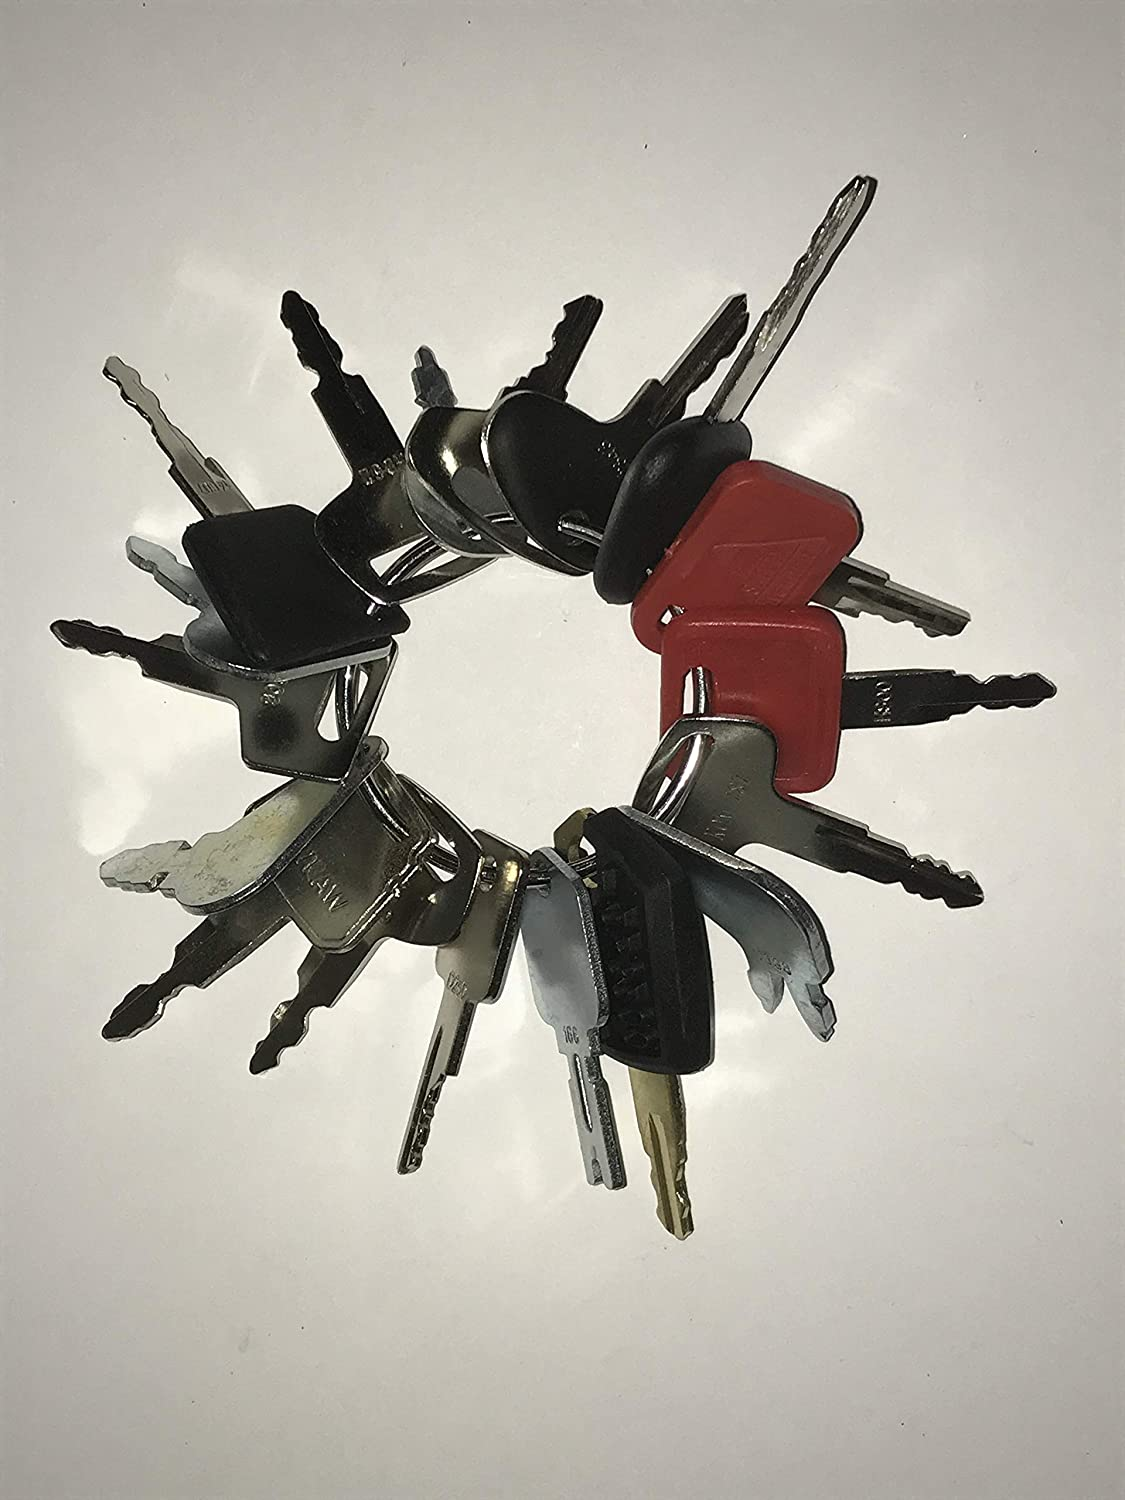 Keyman 18 Keys Heavy Equipment Key Set/Construction Ignition Key Set